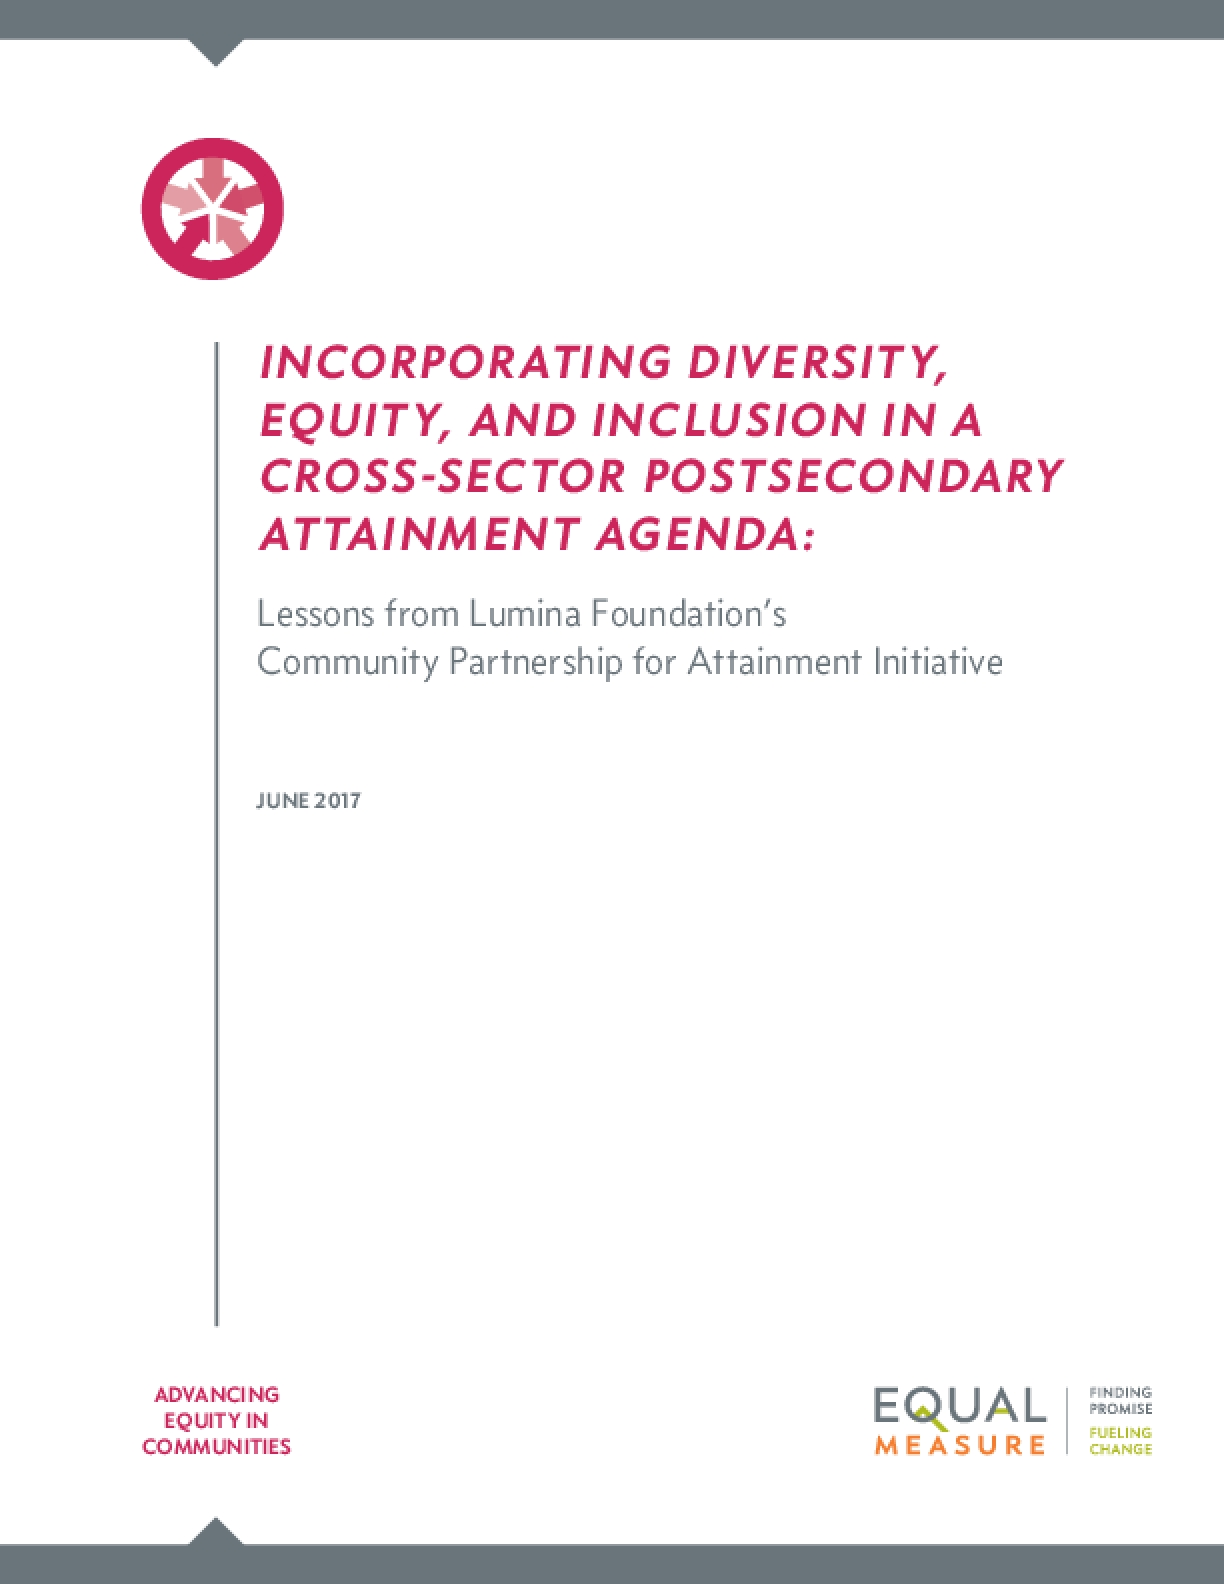 Incorporating Diversity, Equity, and Inclusion in a Cross-Sector Postsecondary Attainment Agenda